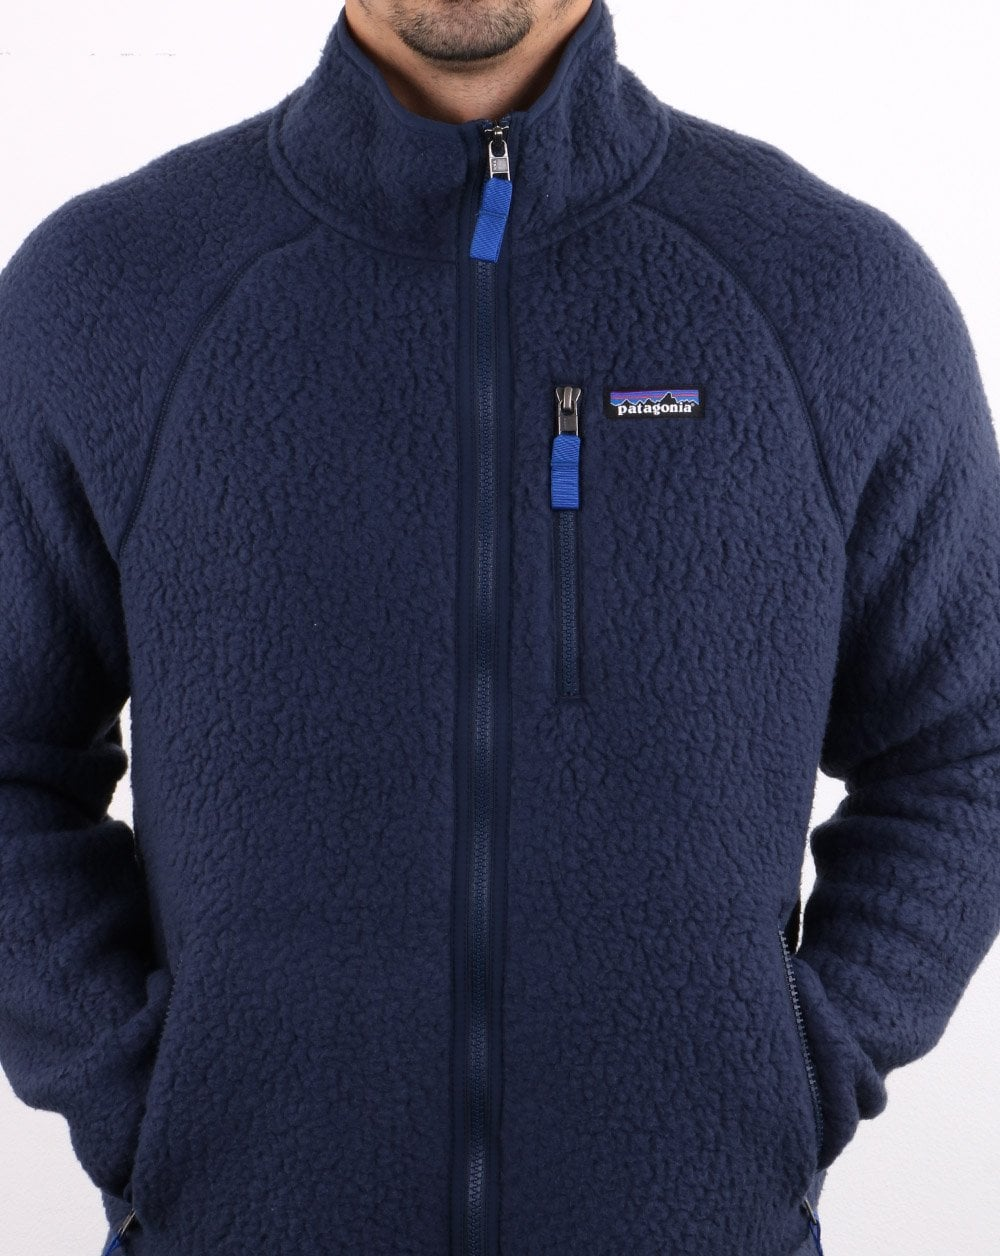 clearance prices buy good quality products Patagonia Retro Pile Jacket Navy | 80s Casual Classics